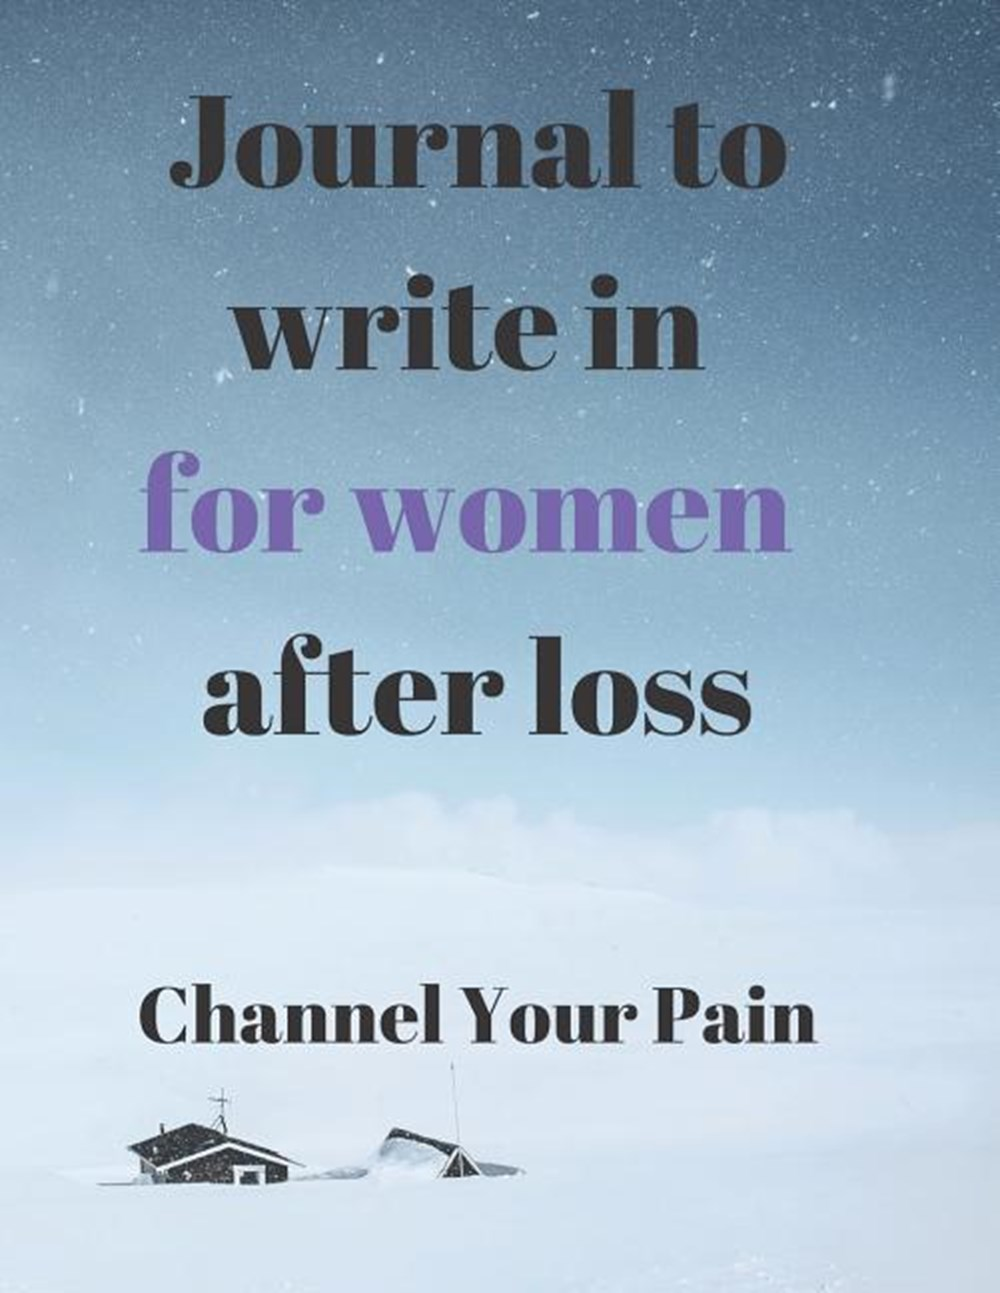 Journals to Write in for Women After Loss Channel the pain of your loss in Writing!